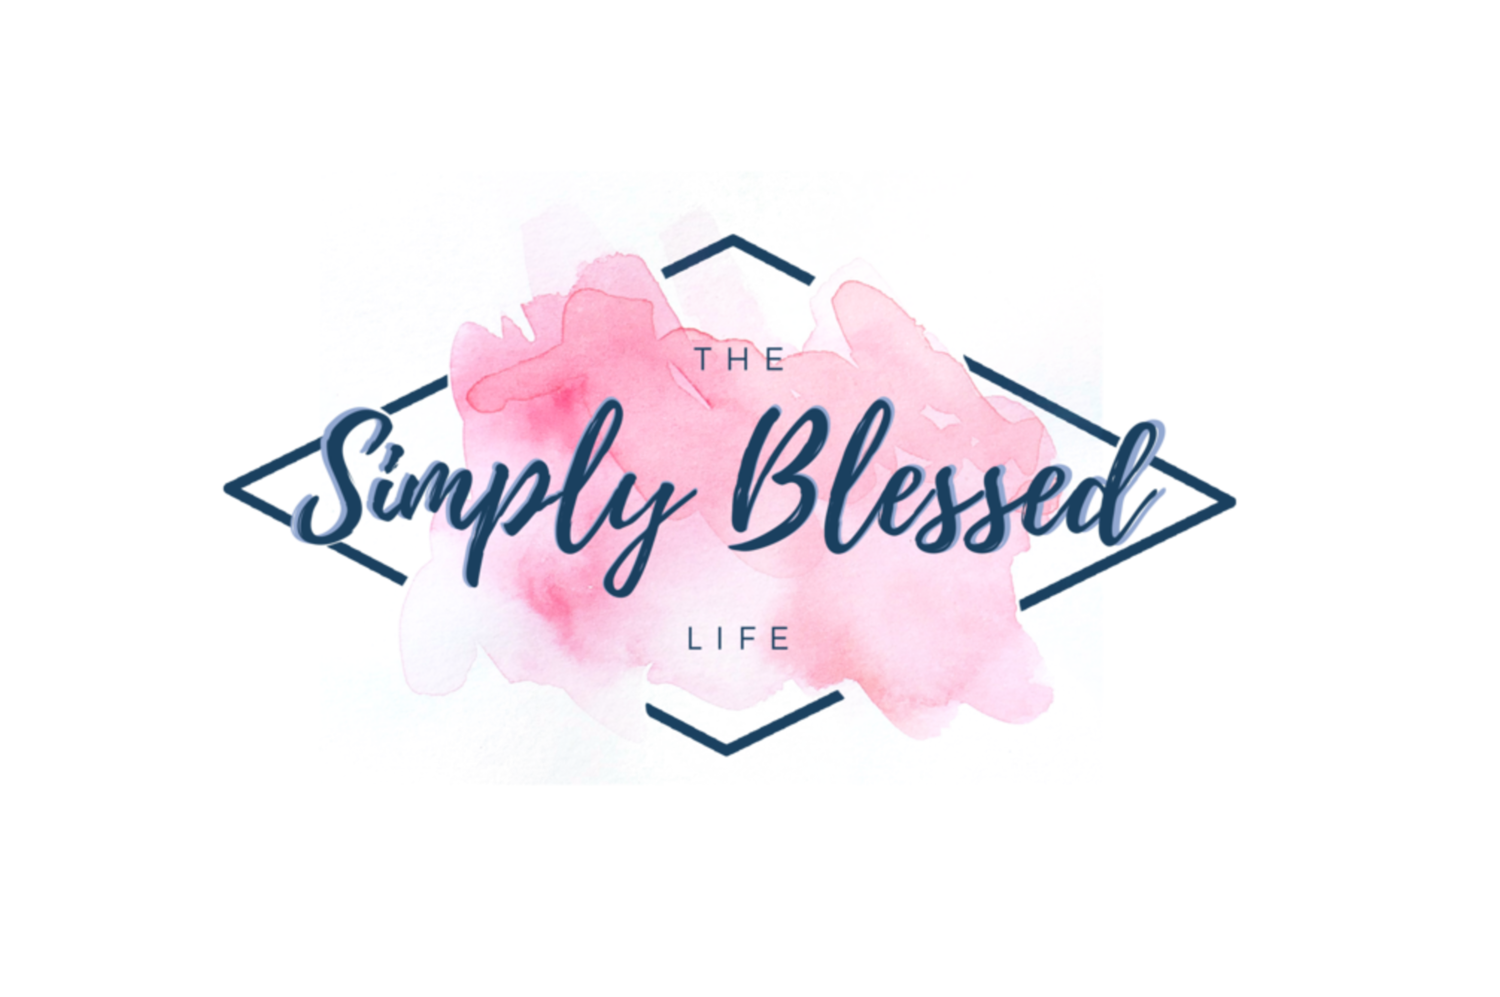 The Simply Blessed LIfe